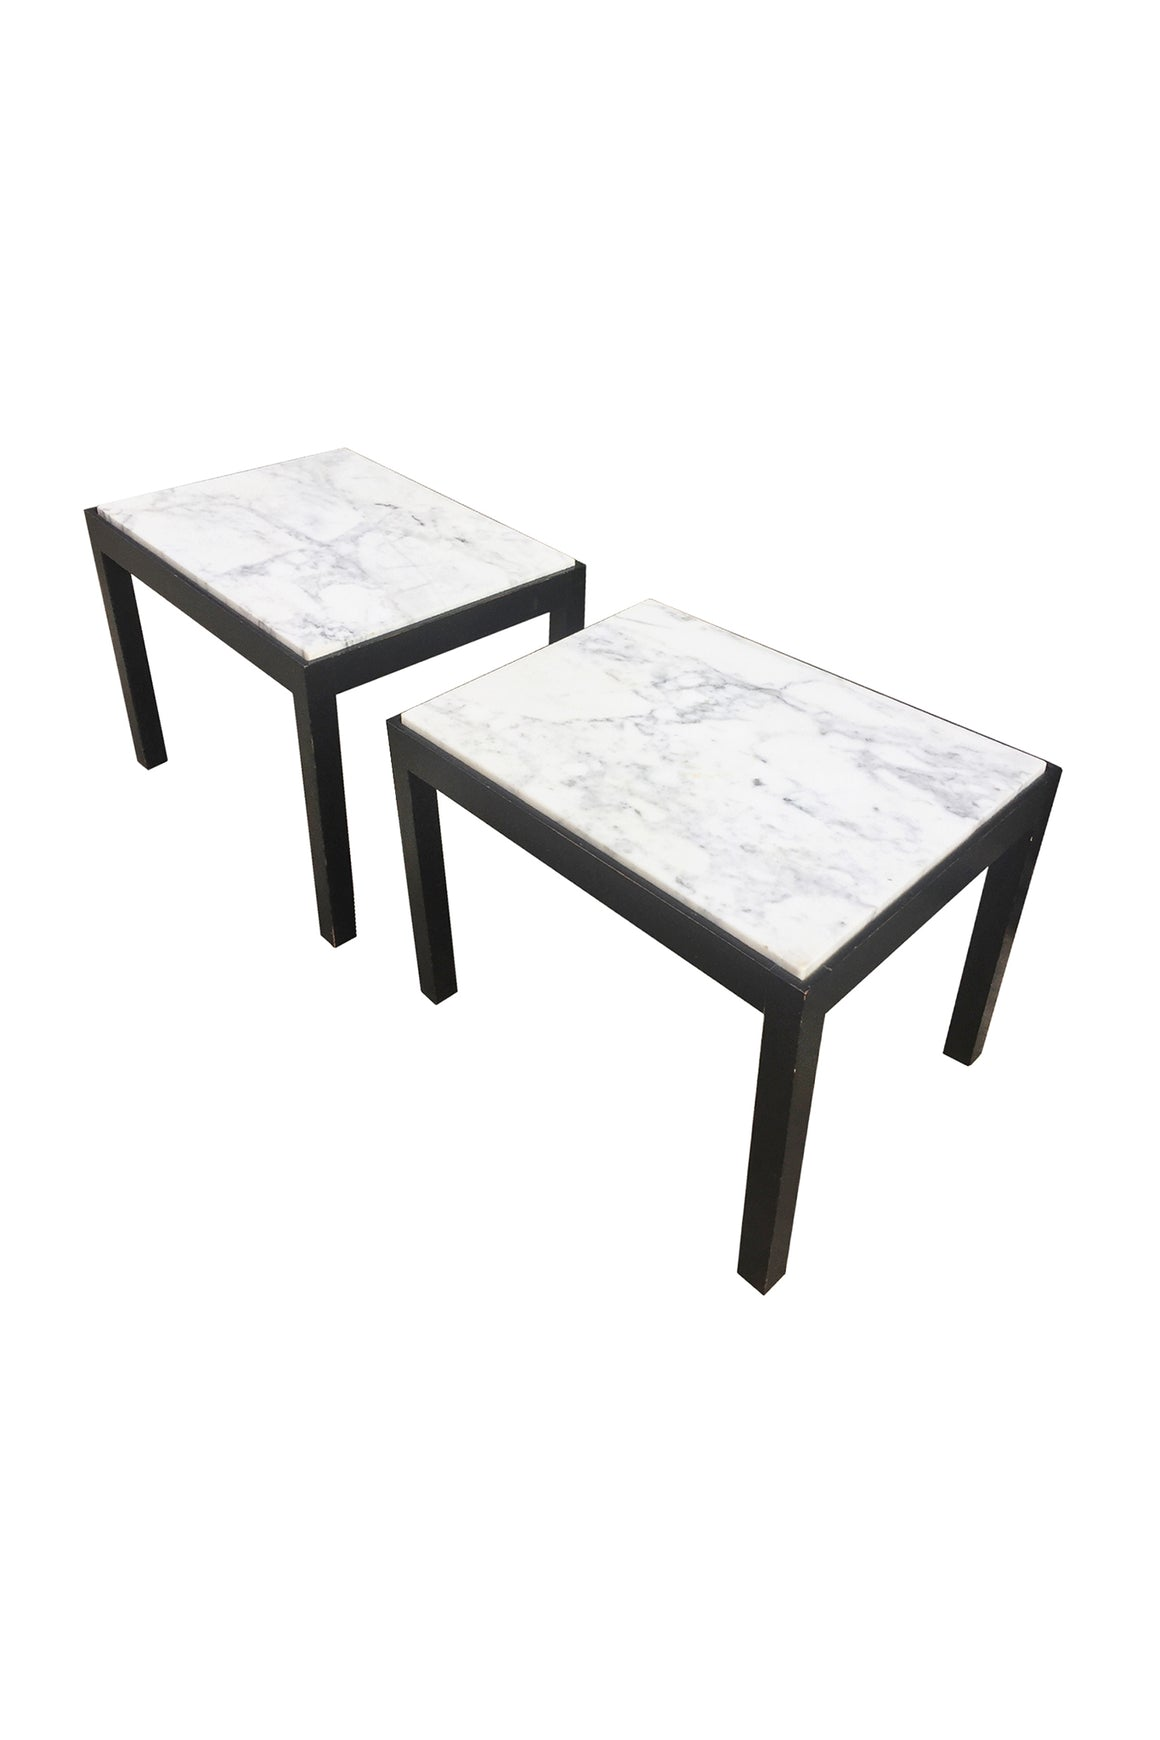 Pair of Midcentury Marble-Top Side Tables Attributed to Harvey Probber